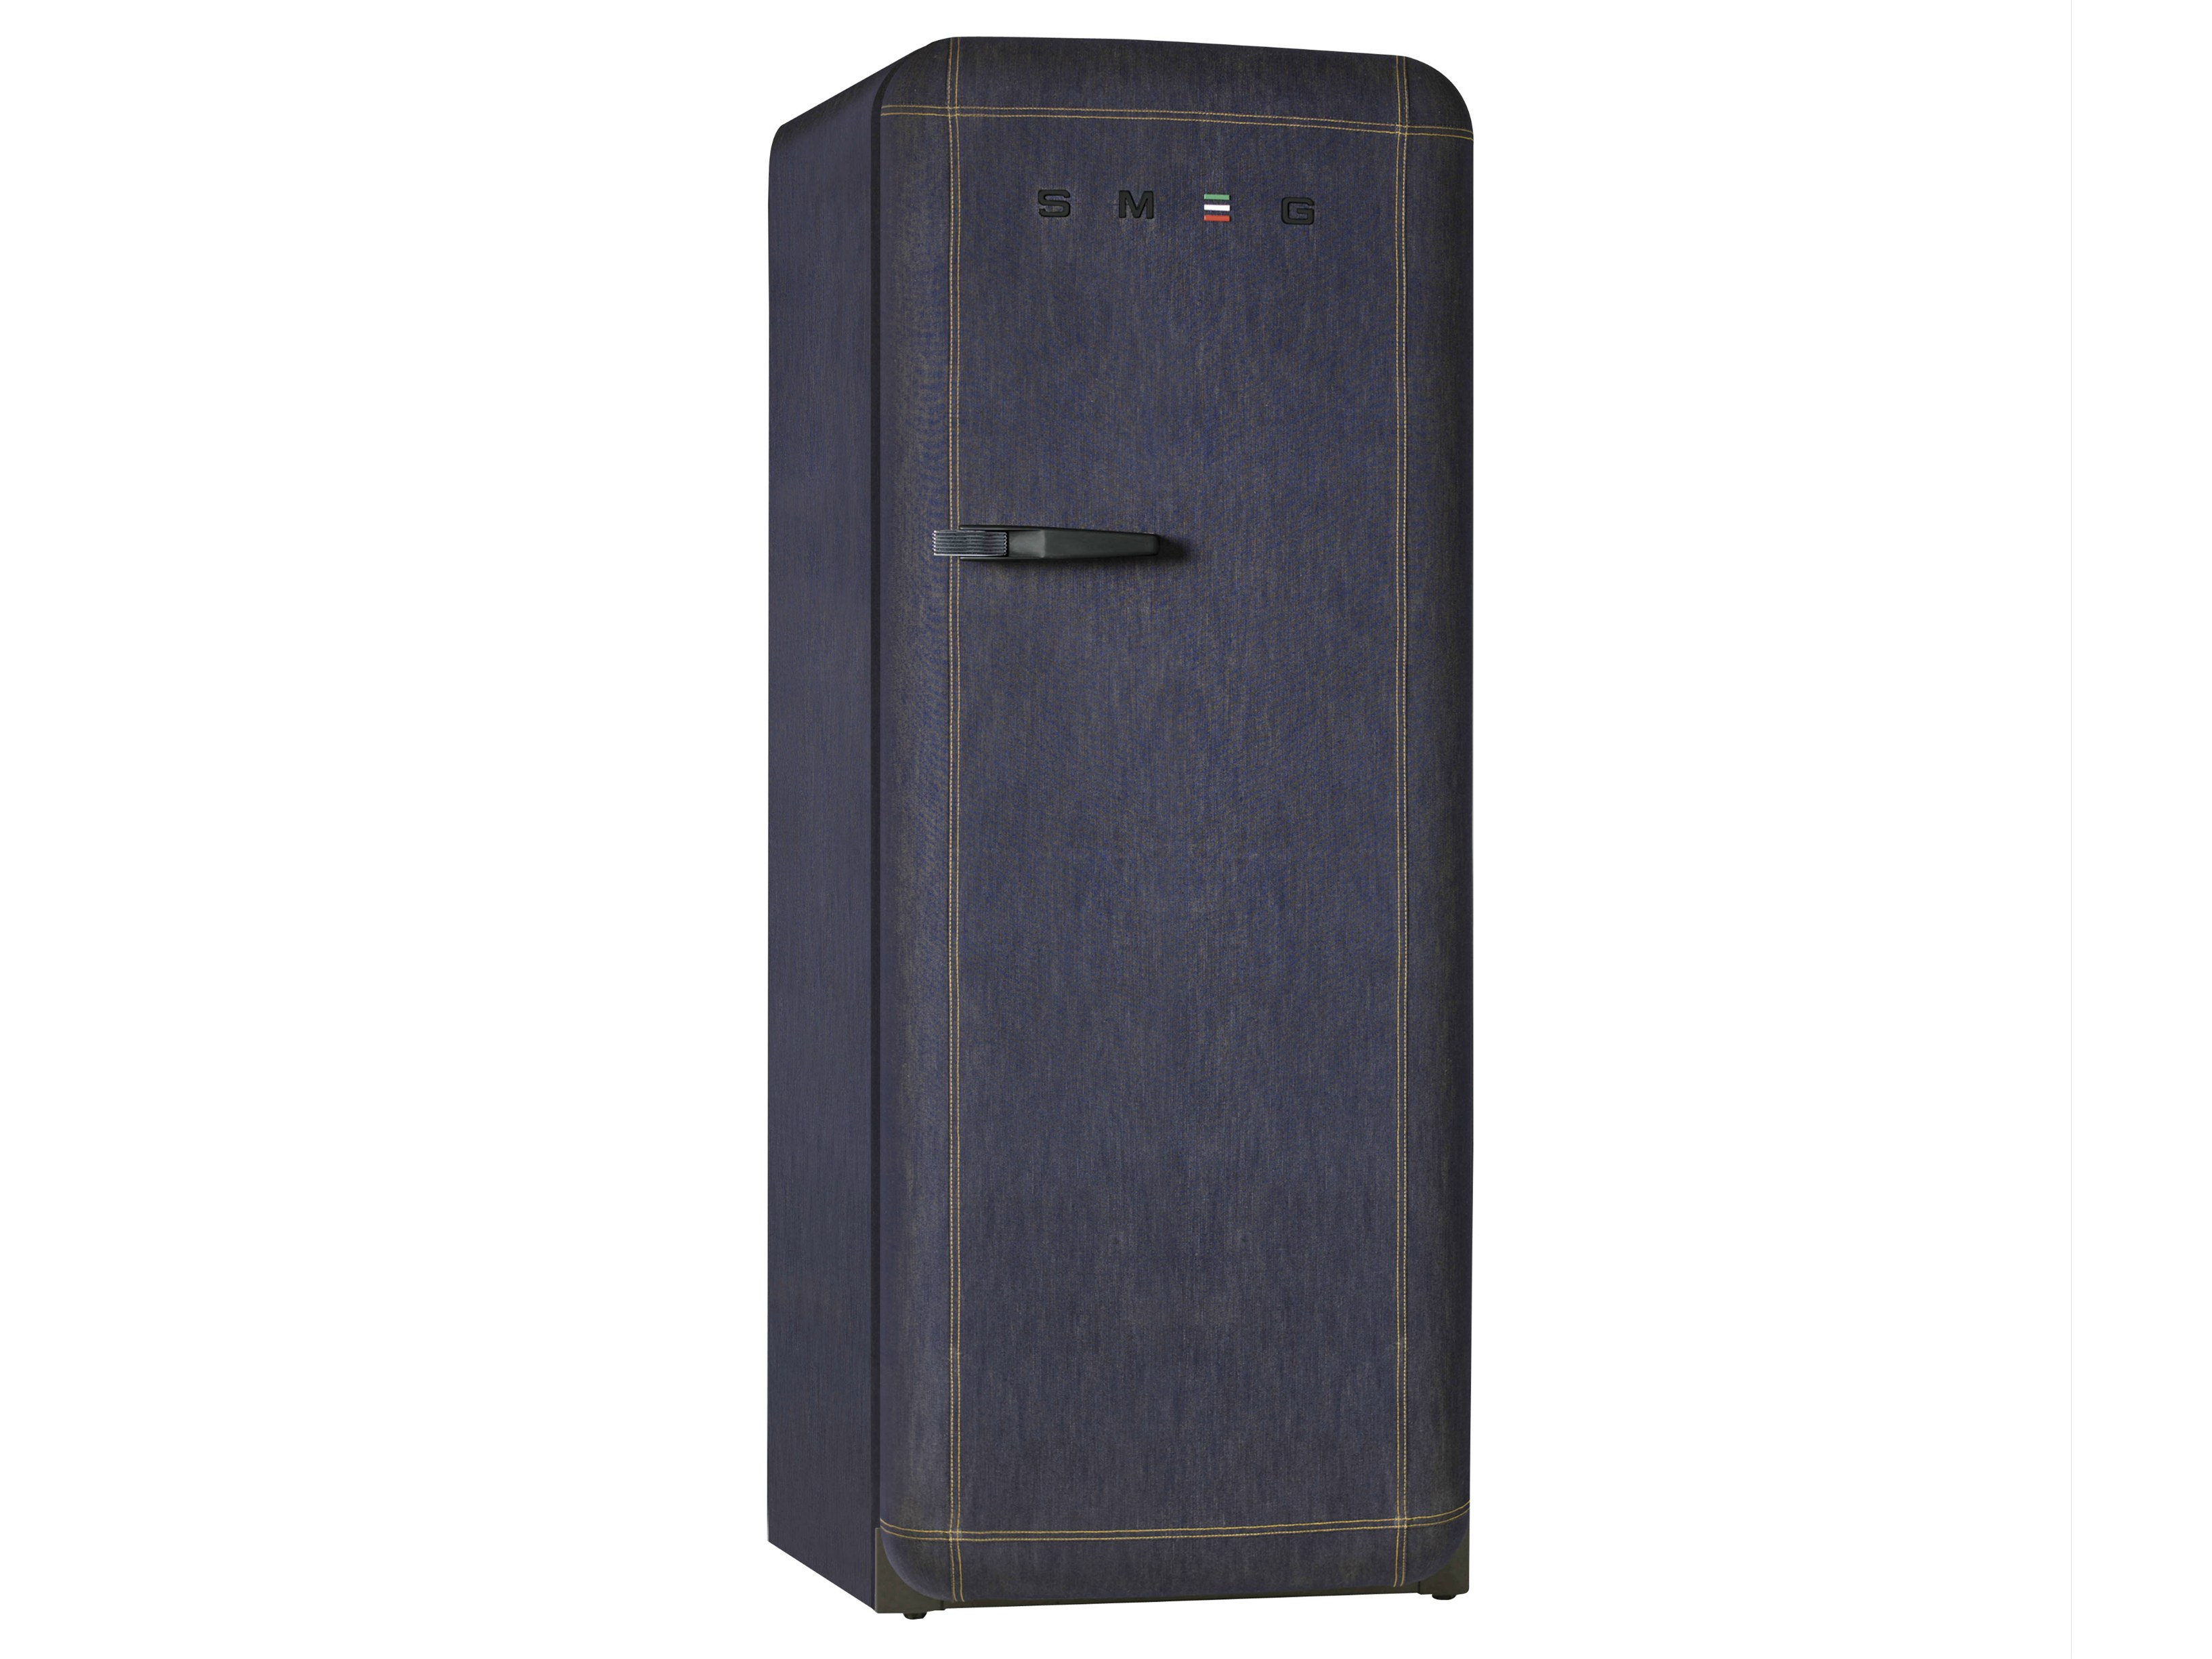 fab28rdb refrigerator by smeg. Black Bedroom Furniture Sets. Home Design Ideas